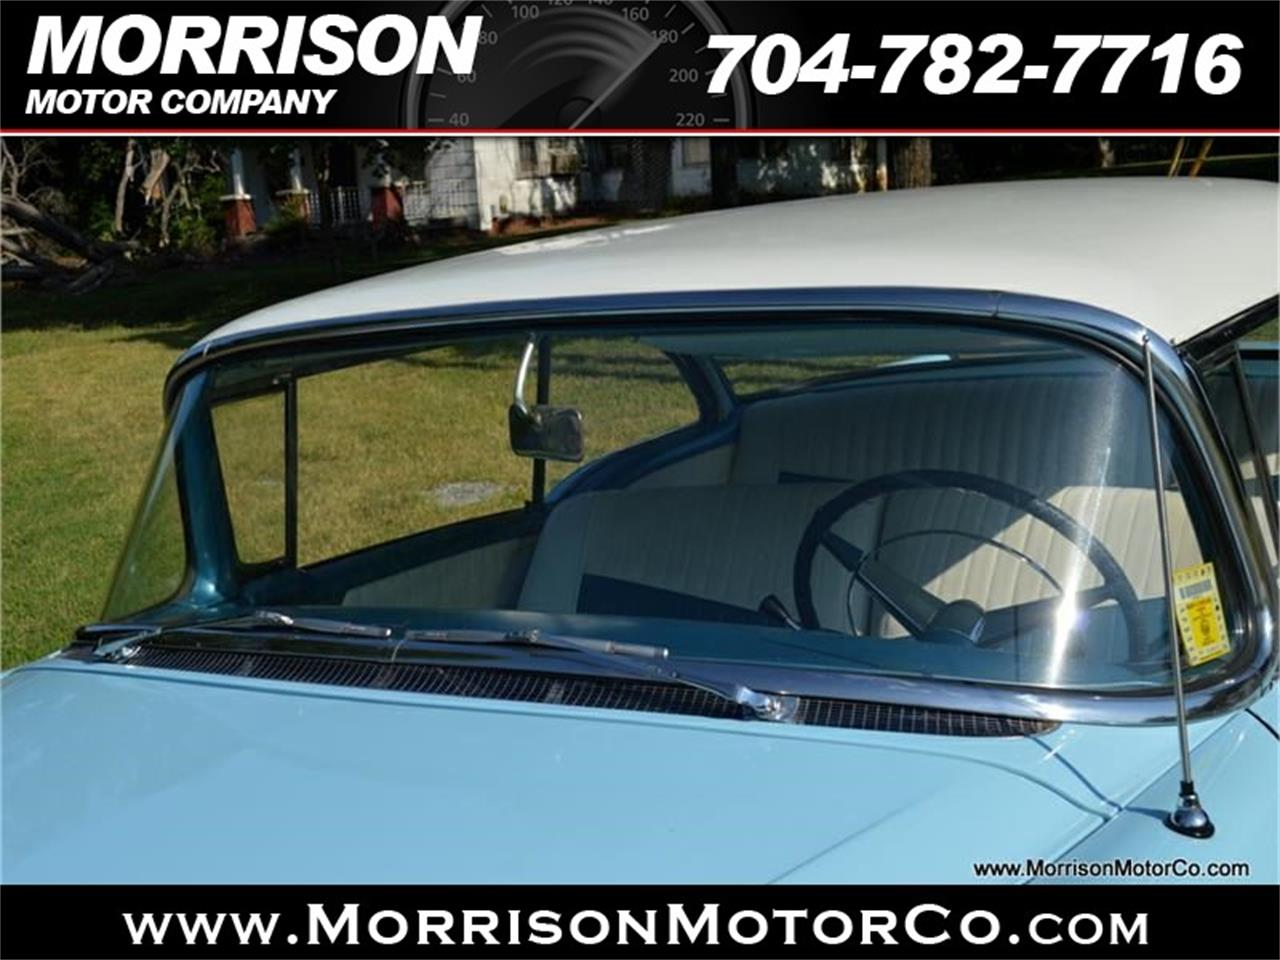 Large Picture of Classic 1956 Buick Special Riviera located in North Carolina Offered by Morrison Motor Company - M8P8